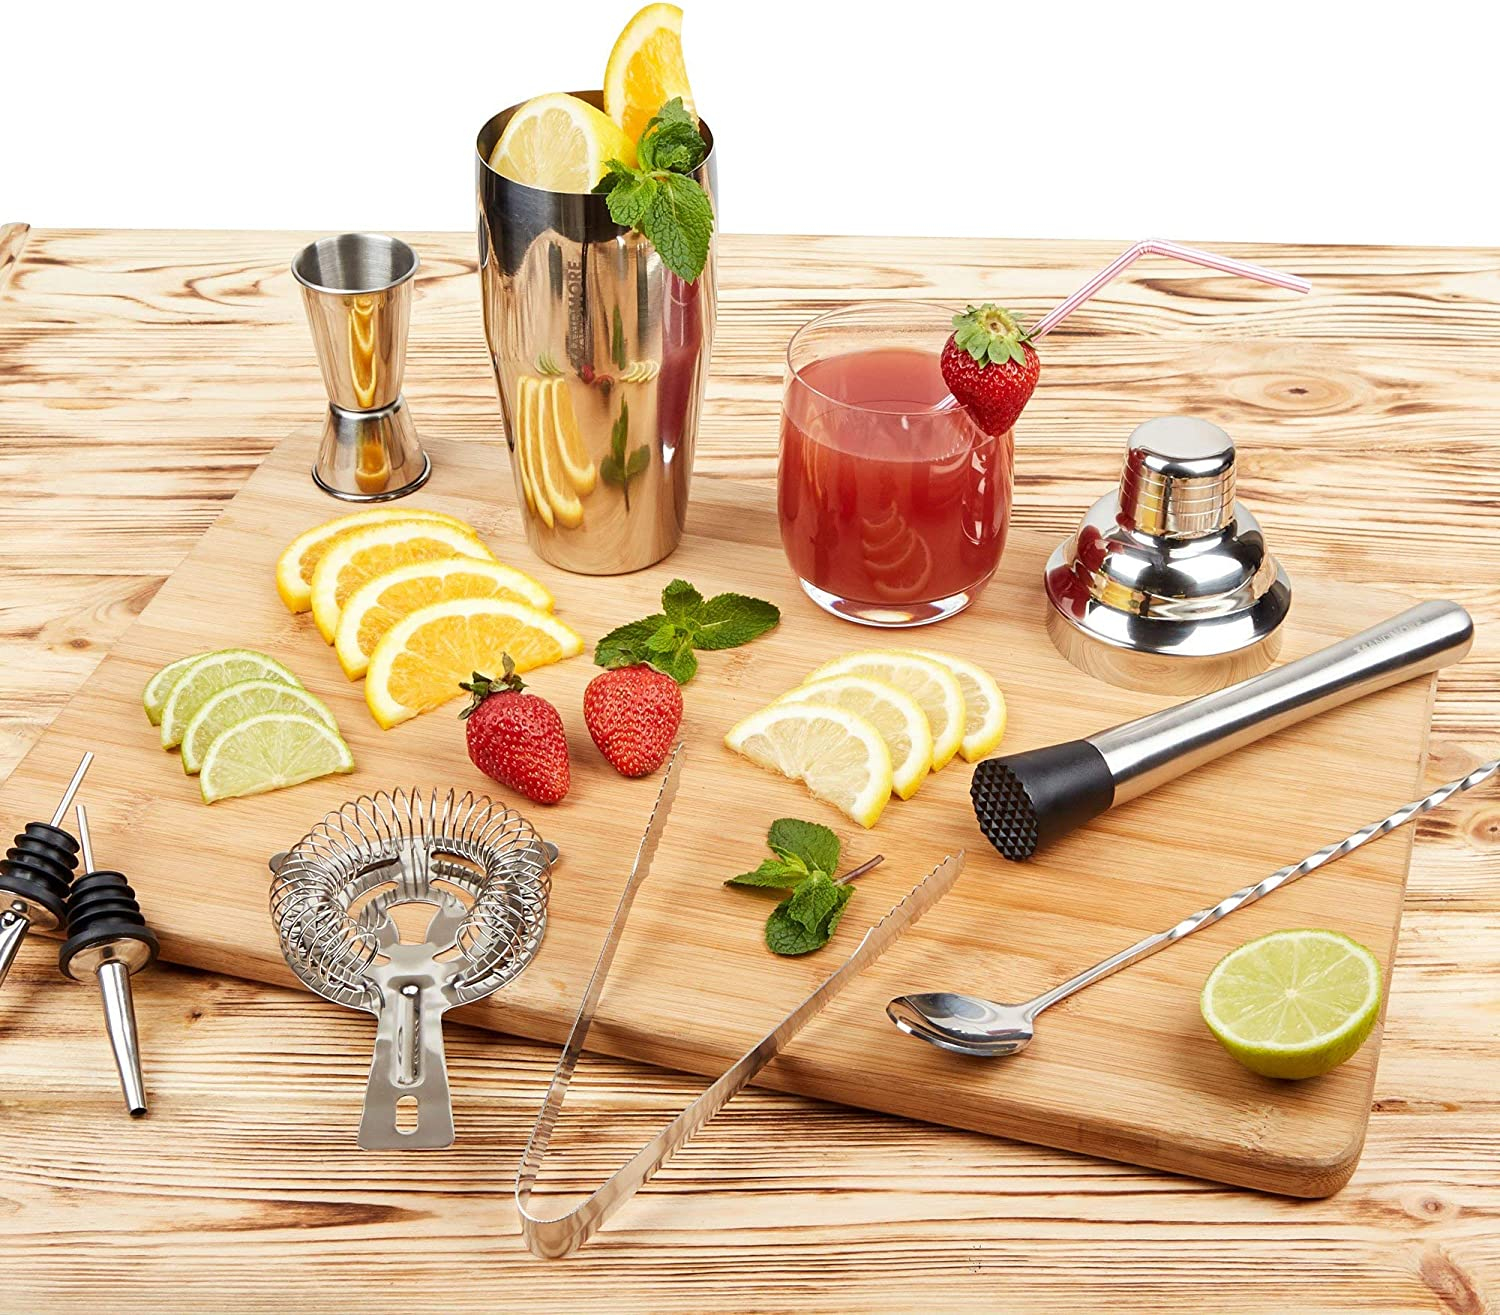 Luxury Bar Set with Wooden Stand Organized Mixology Kit to Prepare Cocktails ay Home Gradient Color Bartender Kit